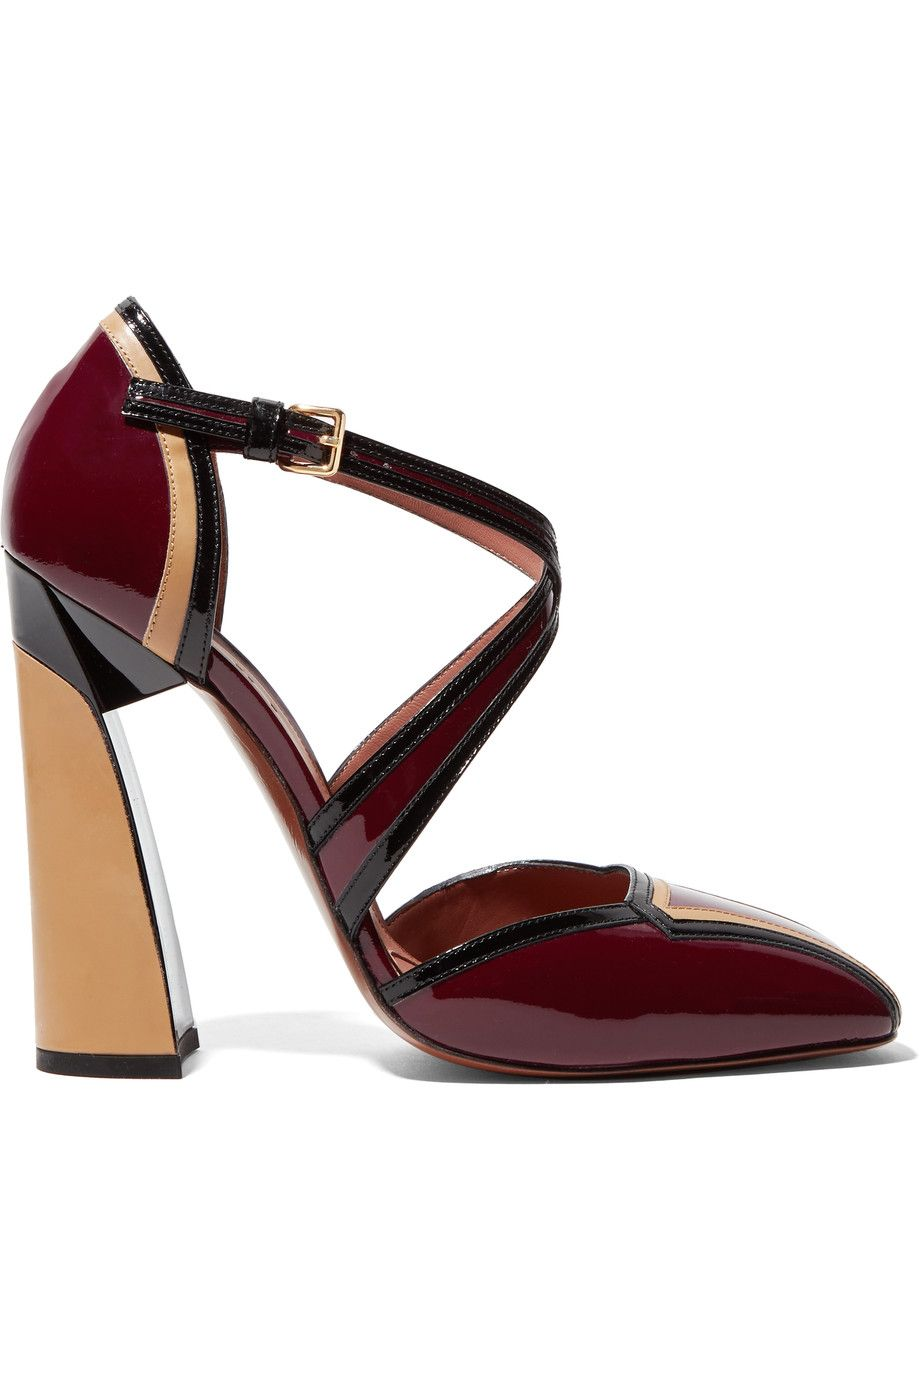 Marni Patent Leather Pumps